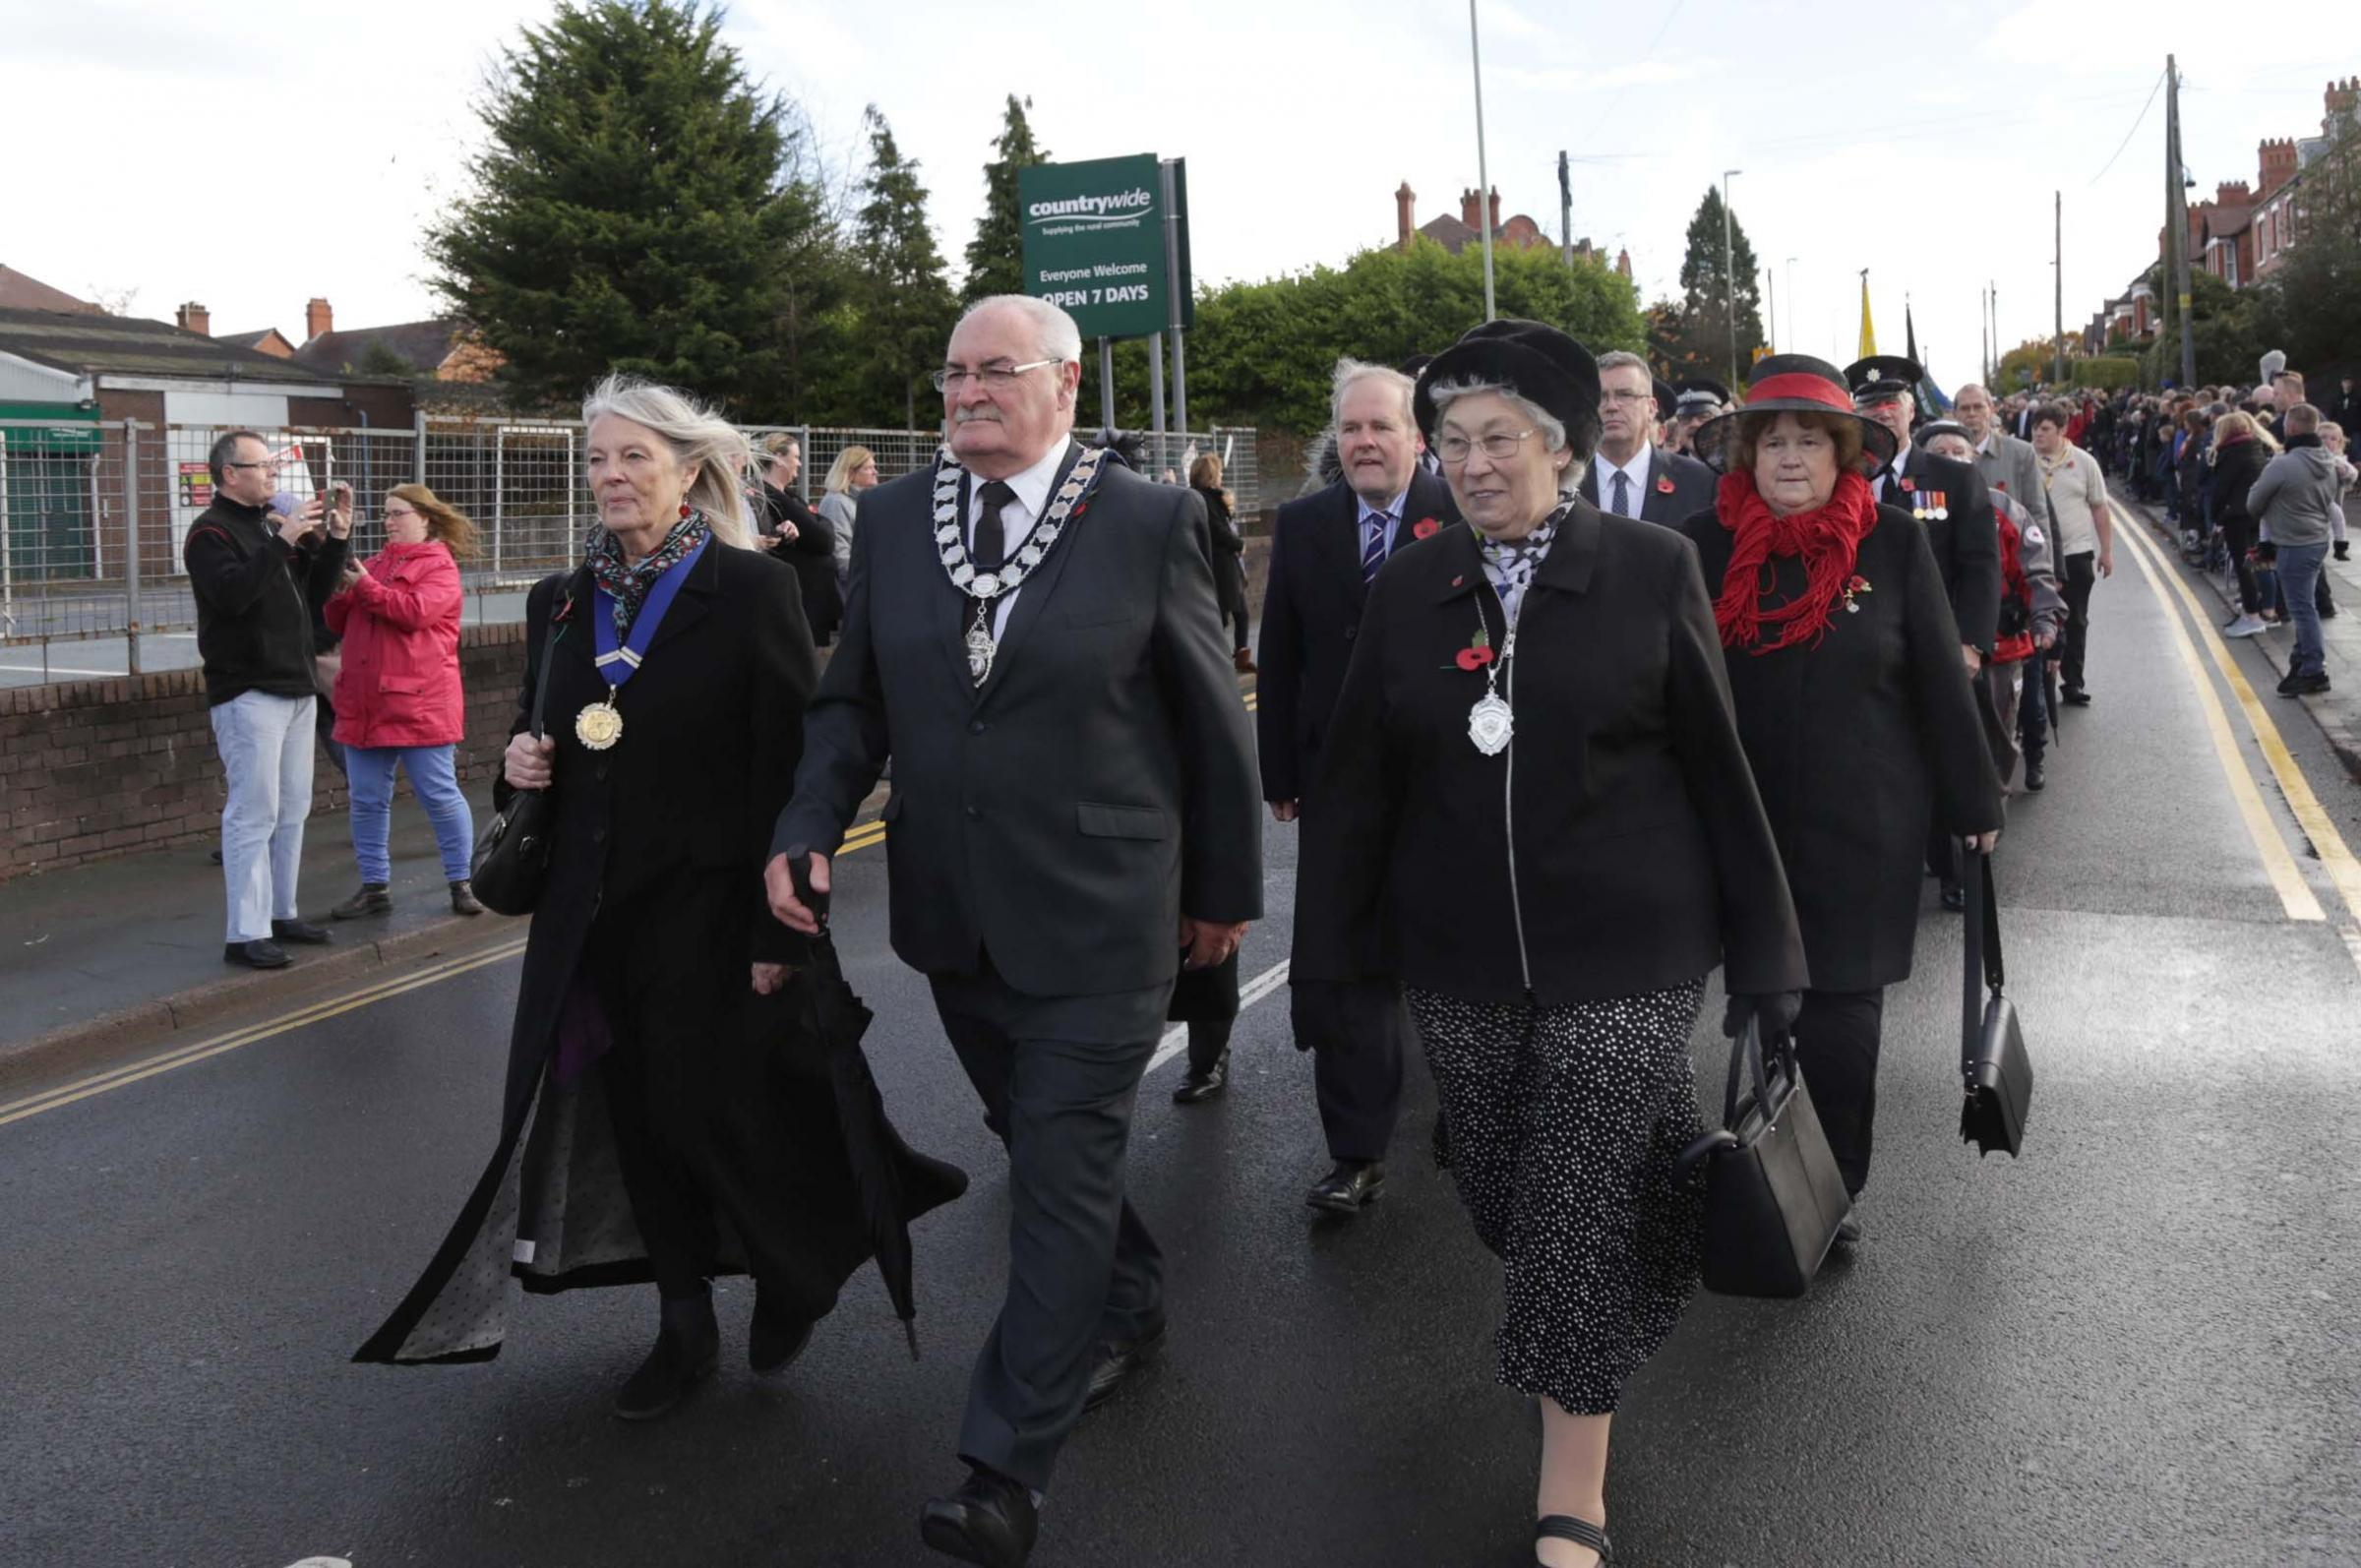 Whitchurch town mayor Tony Neville leads fellow town councillors in the parade on Armistice Day